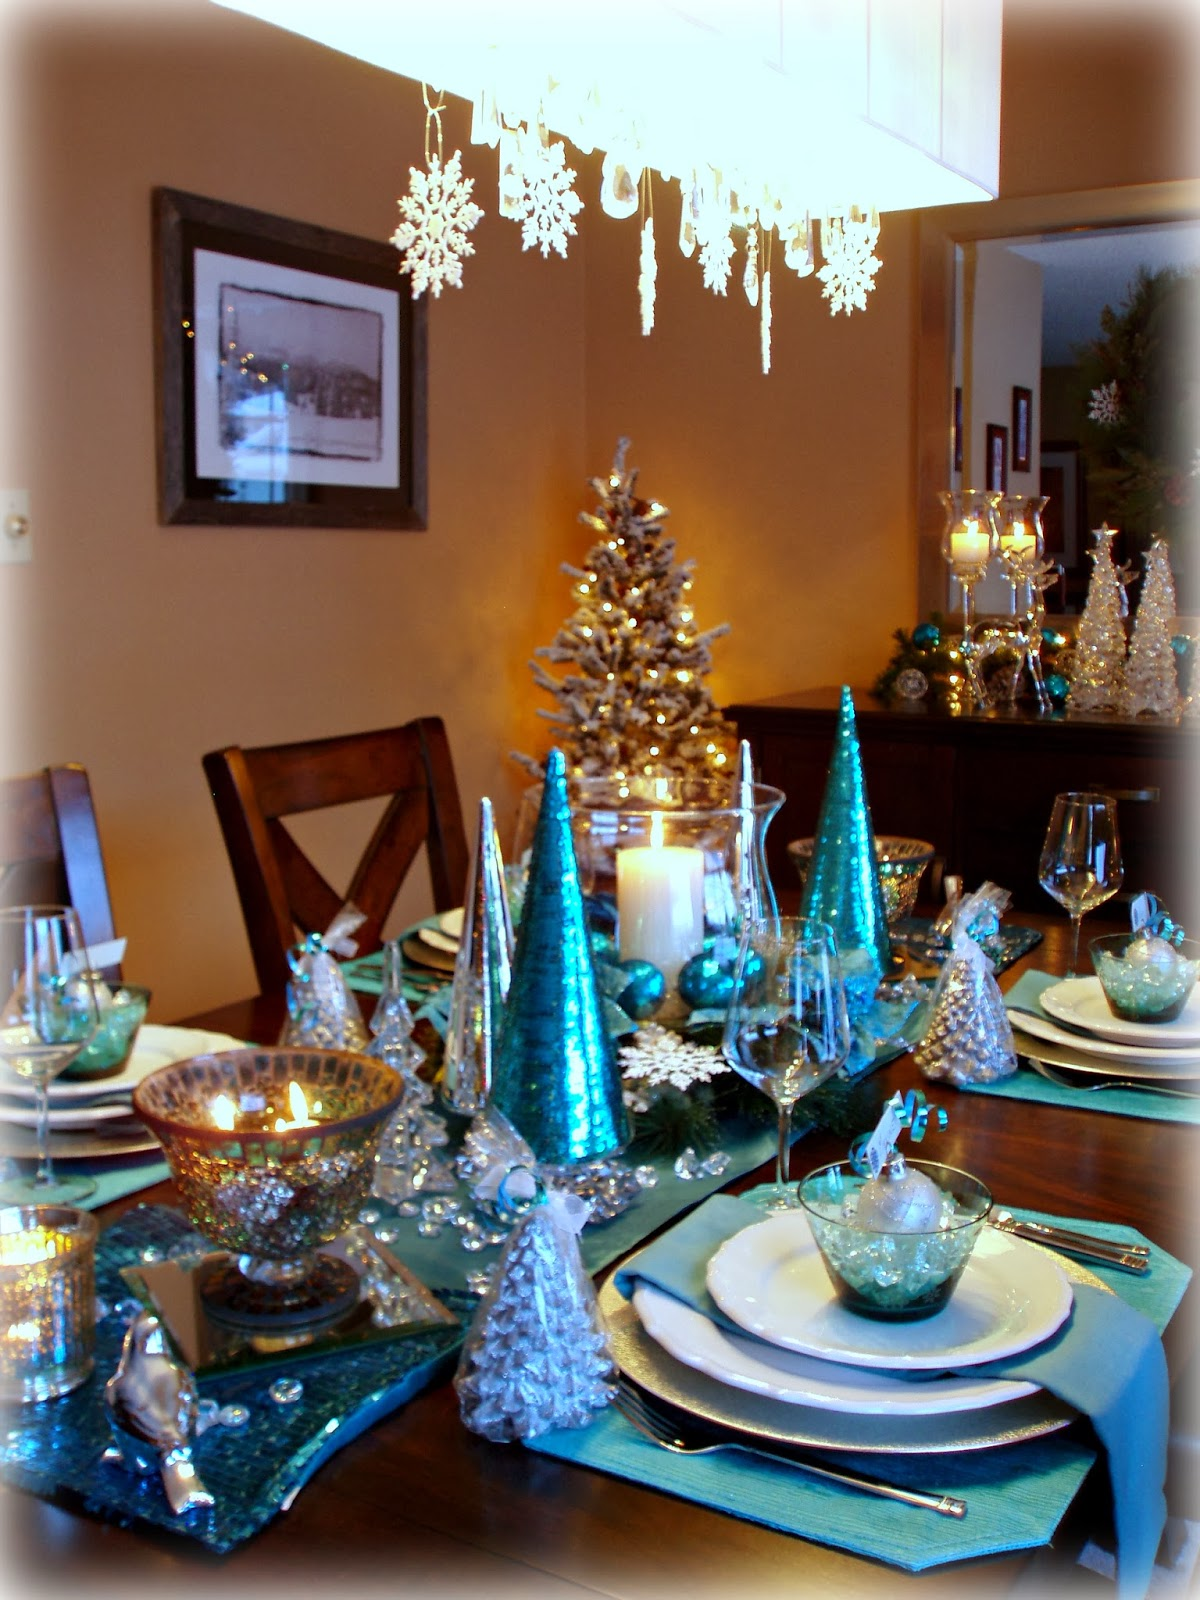 Snowflake Decor In Dining Room